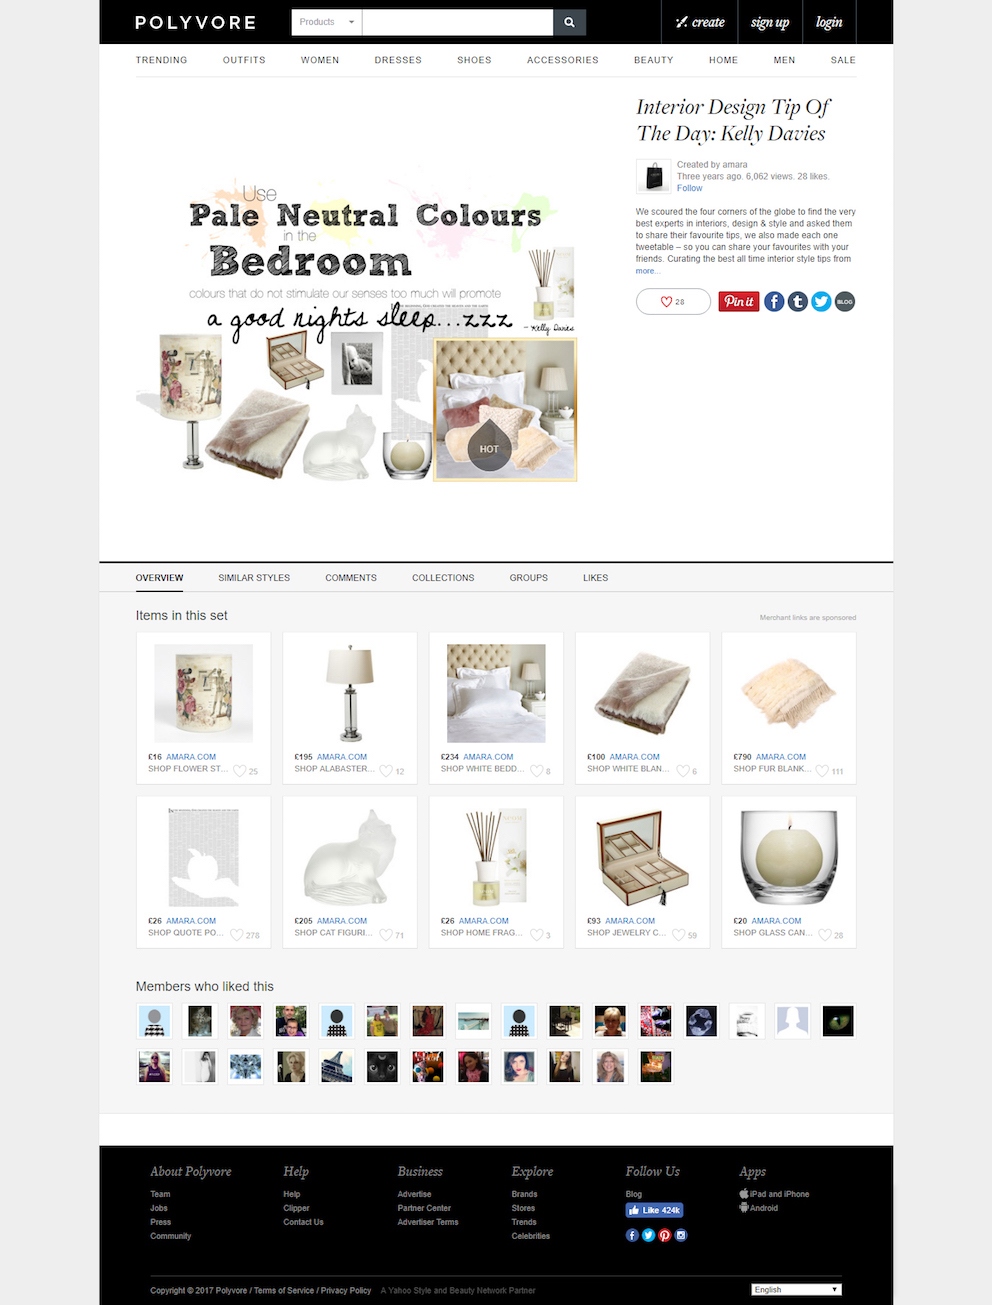 Interior Design Tip Of The Day Kelly Davies - Neutrals - Polyvore FINAL